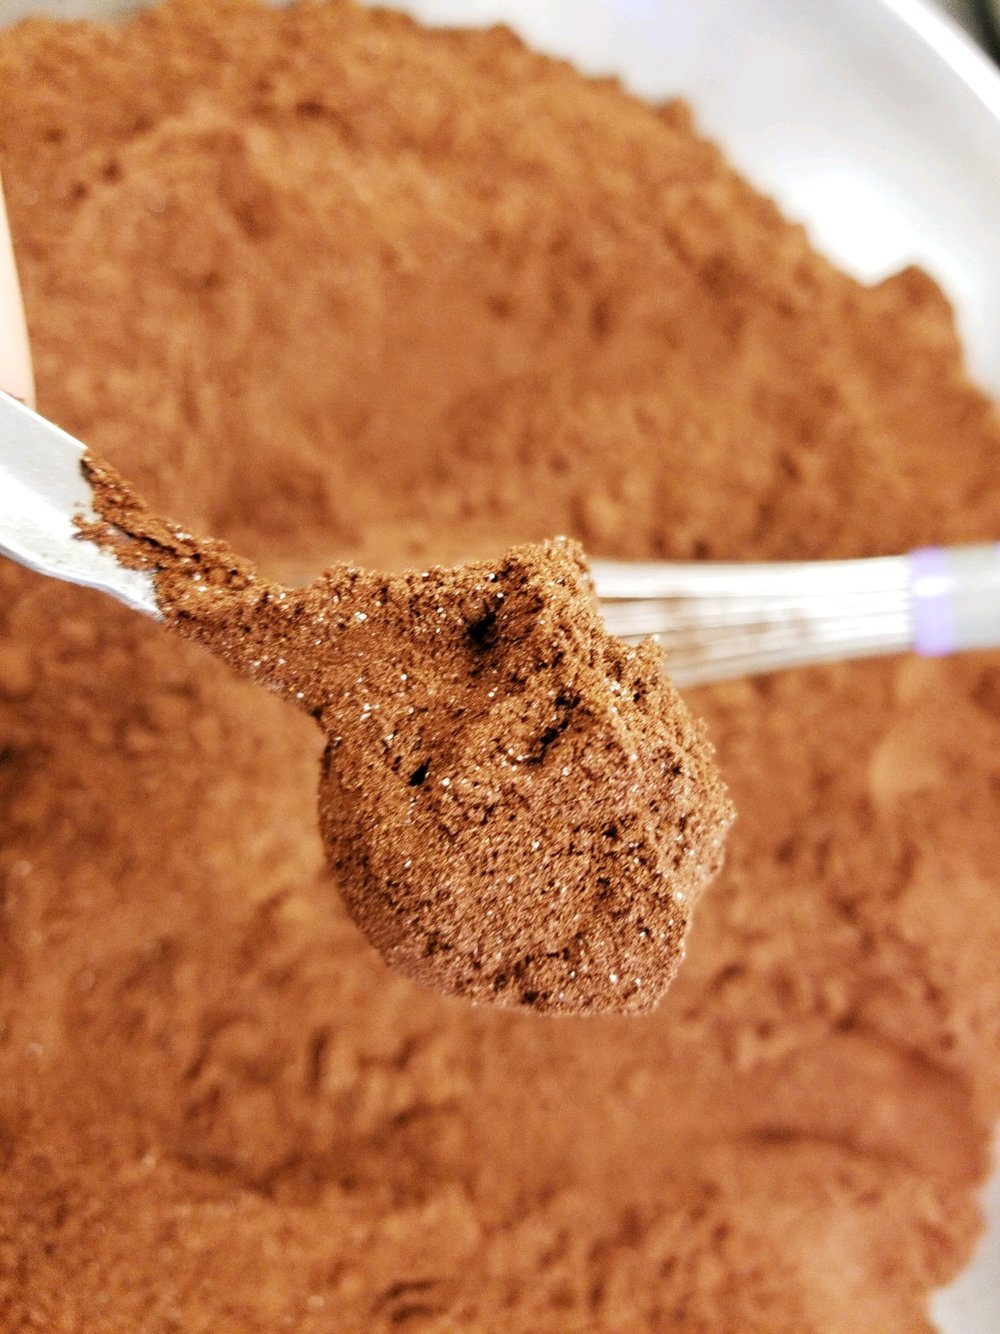 red and black cocoa - We use the best supplier of cocoa on the market. They are well-known for their high quality practices and their cocoa is Fair Trade Certified, non-GMO, and gluten and peanut free. Our Smart Cocoa is a blend of red and black cocoa. Red cocoa is higher in fat with a rich, fudgy and robust chocolate flavor. Black cocoa, used more to flavor our blend, is alkalized for less bitterness and a smooth flavor.